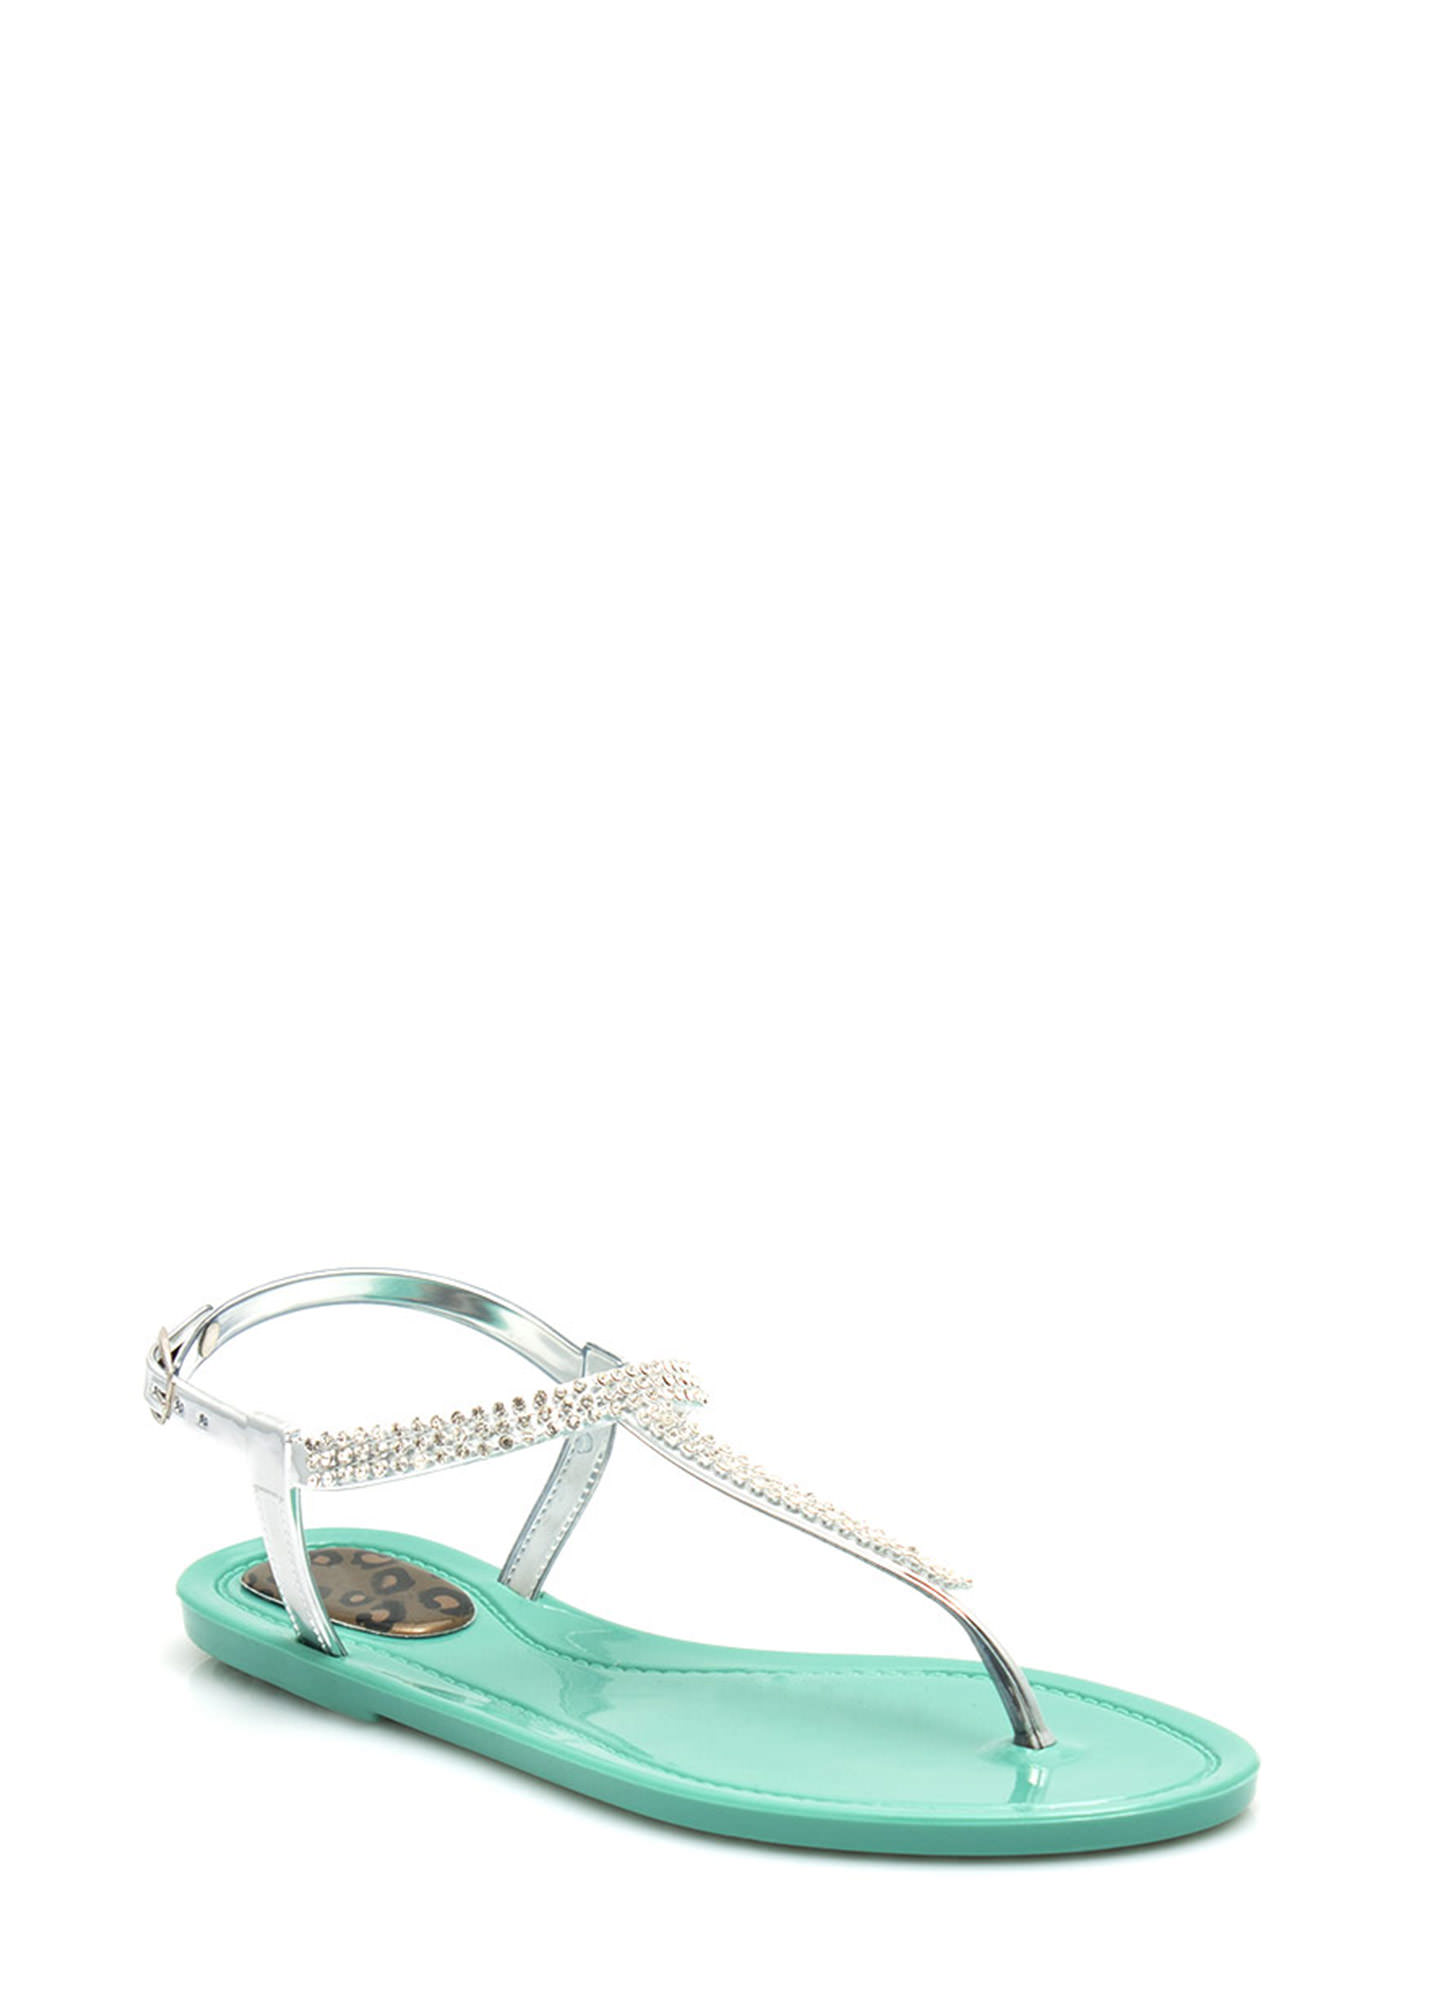 Glitz 'N Glimmer Jelly Sandals MINT